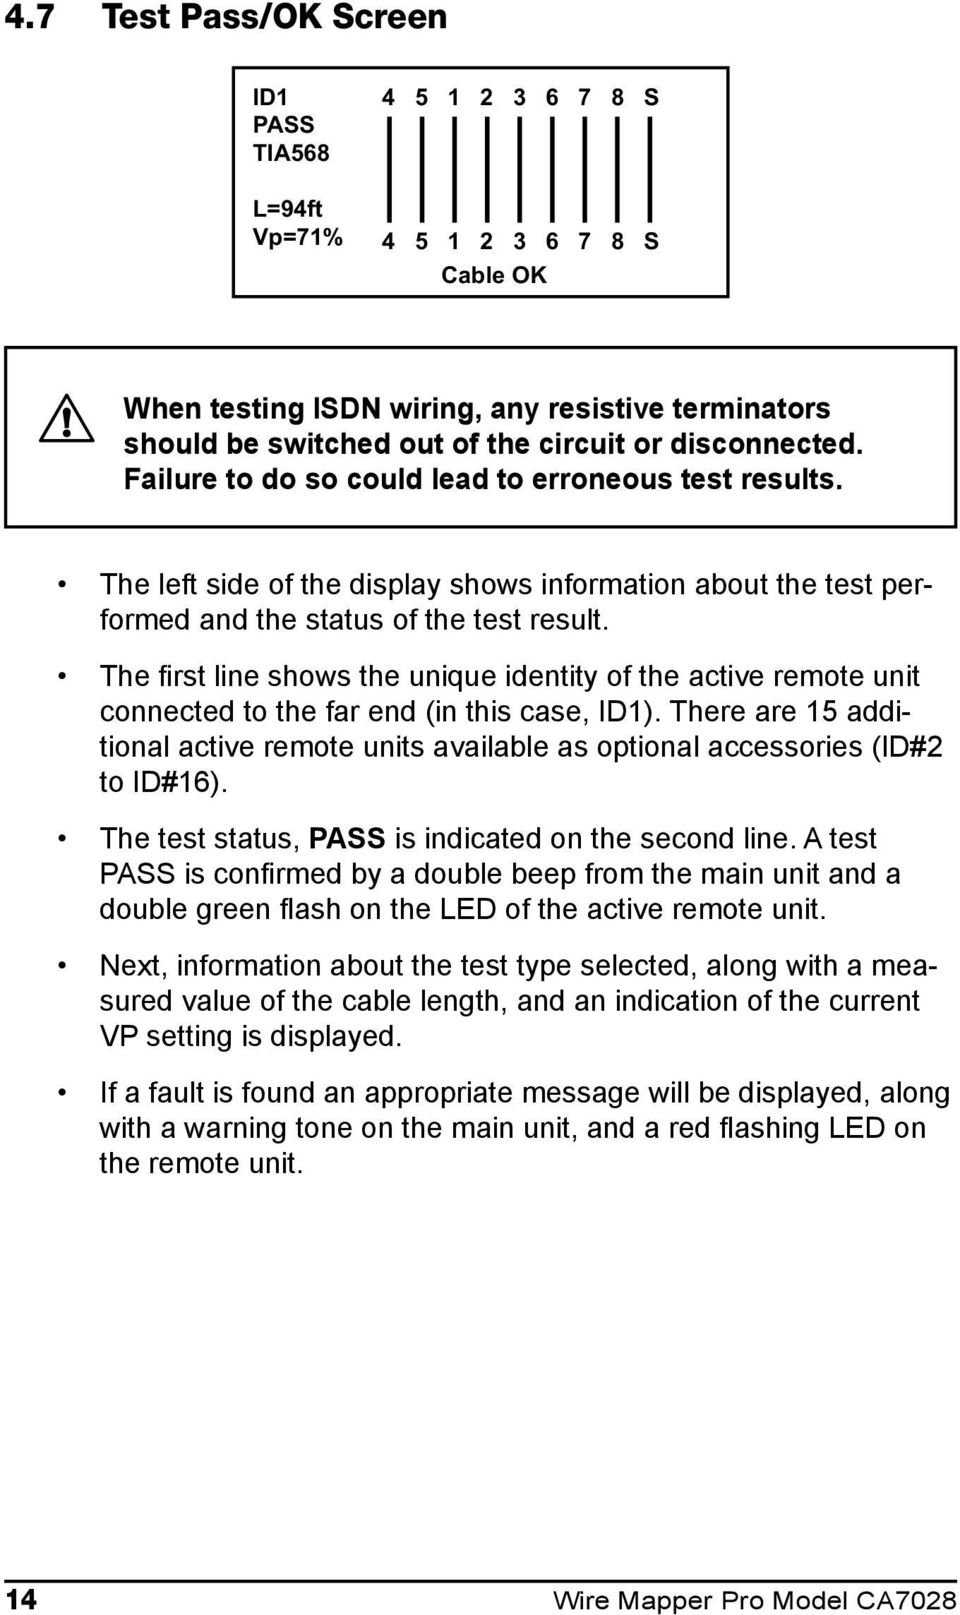 The first line shows the unique identity of the active remote unit connected to the far end (in this case, ID). There are additional active remote units available as optional accessories (ID# to ID#).